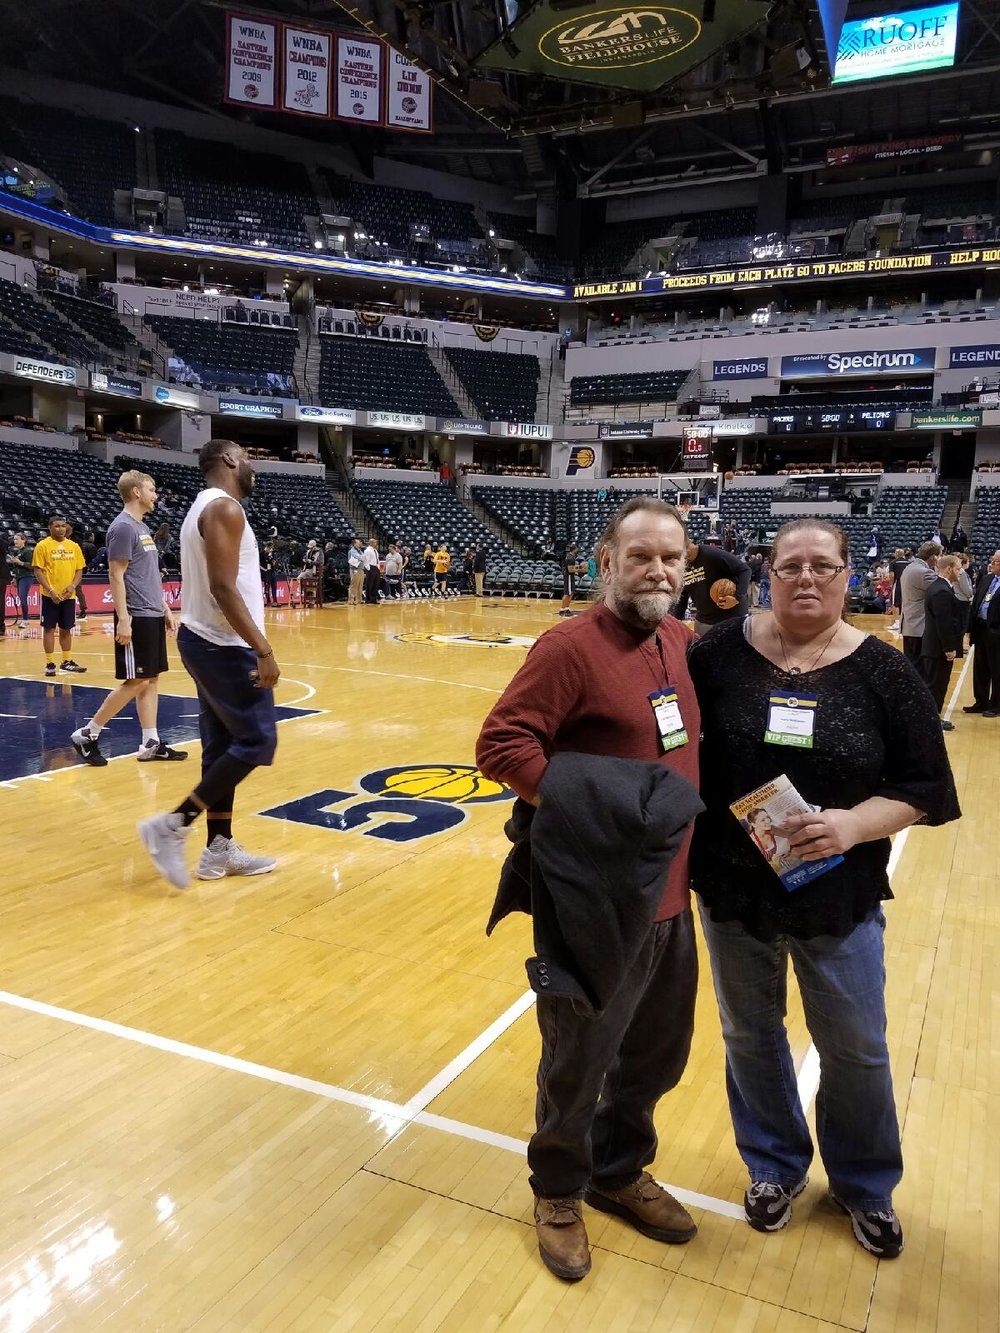 """The Pacer game that I was able to go to was very nice, The Pacer staff Tim Streets was a great joy to get to meet, he showed us around the behind the scenes of the Pacers and how things work during the games, and introduced us to some of the staff. Thank you for the great experience."" -- Mary McKinney, who took her husband Tedd as her guest."